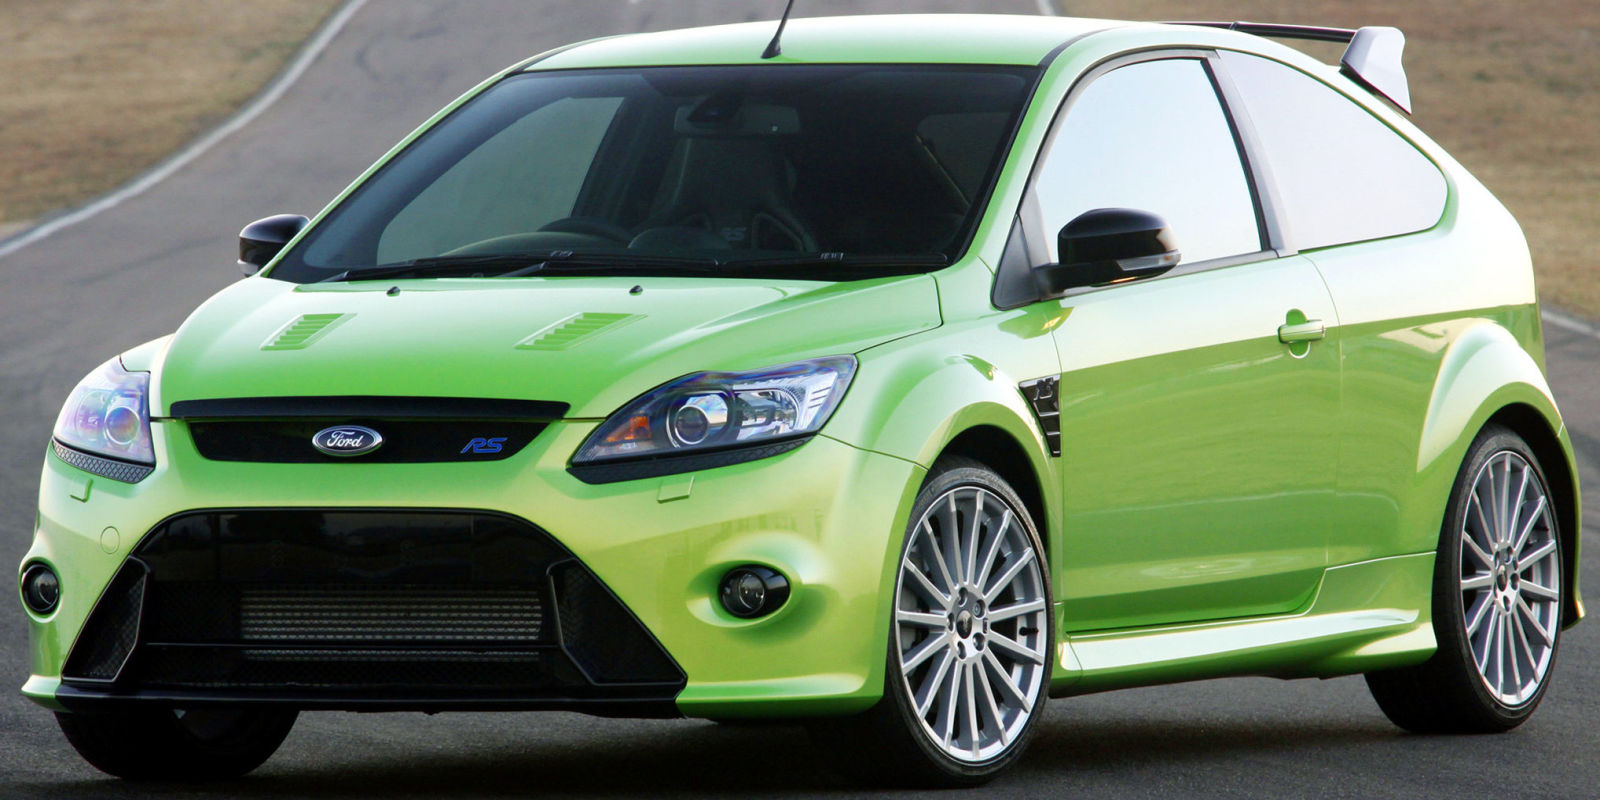 2017 ford focus rs new car photos catalog 2018. Black Bedroom Furniture Sets. Home Design Ideas